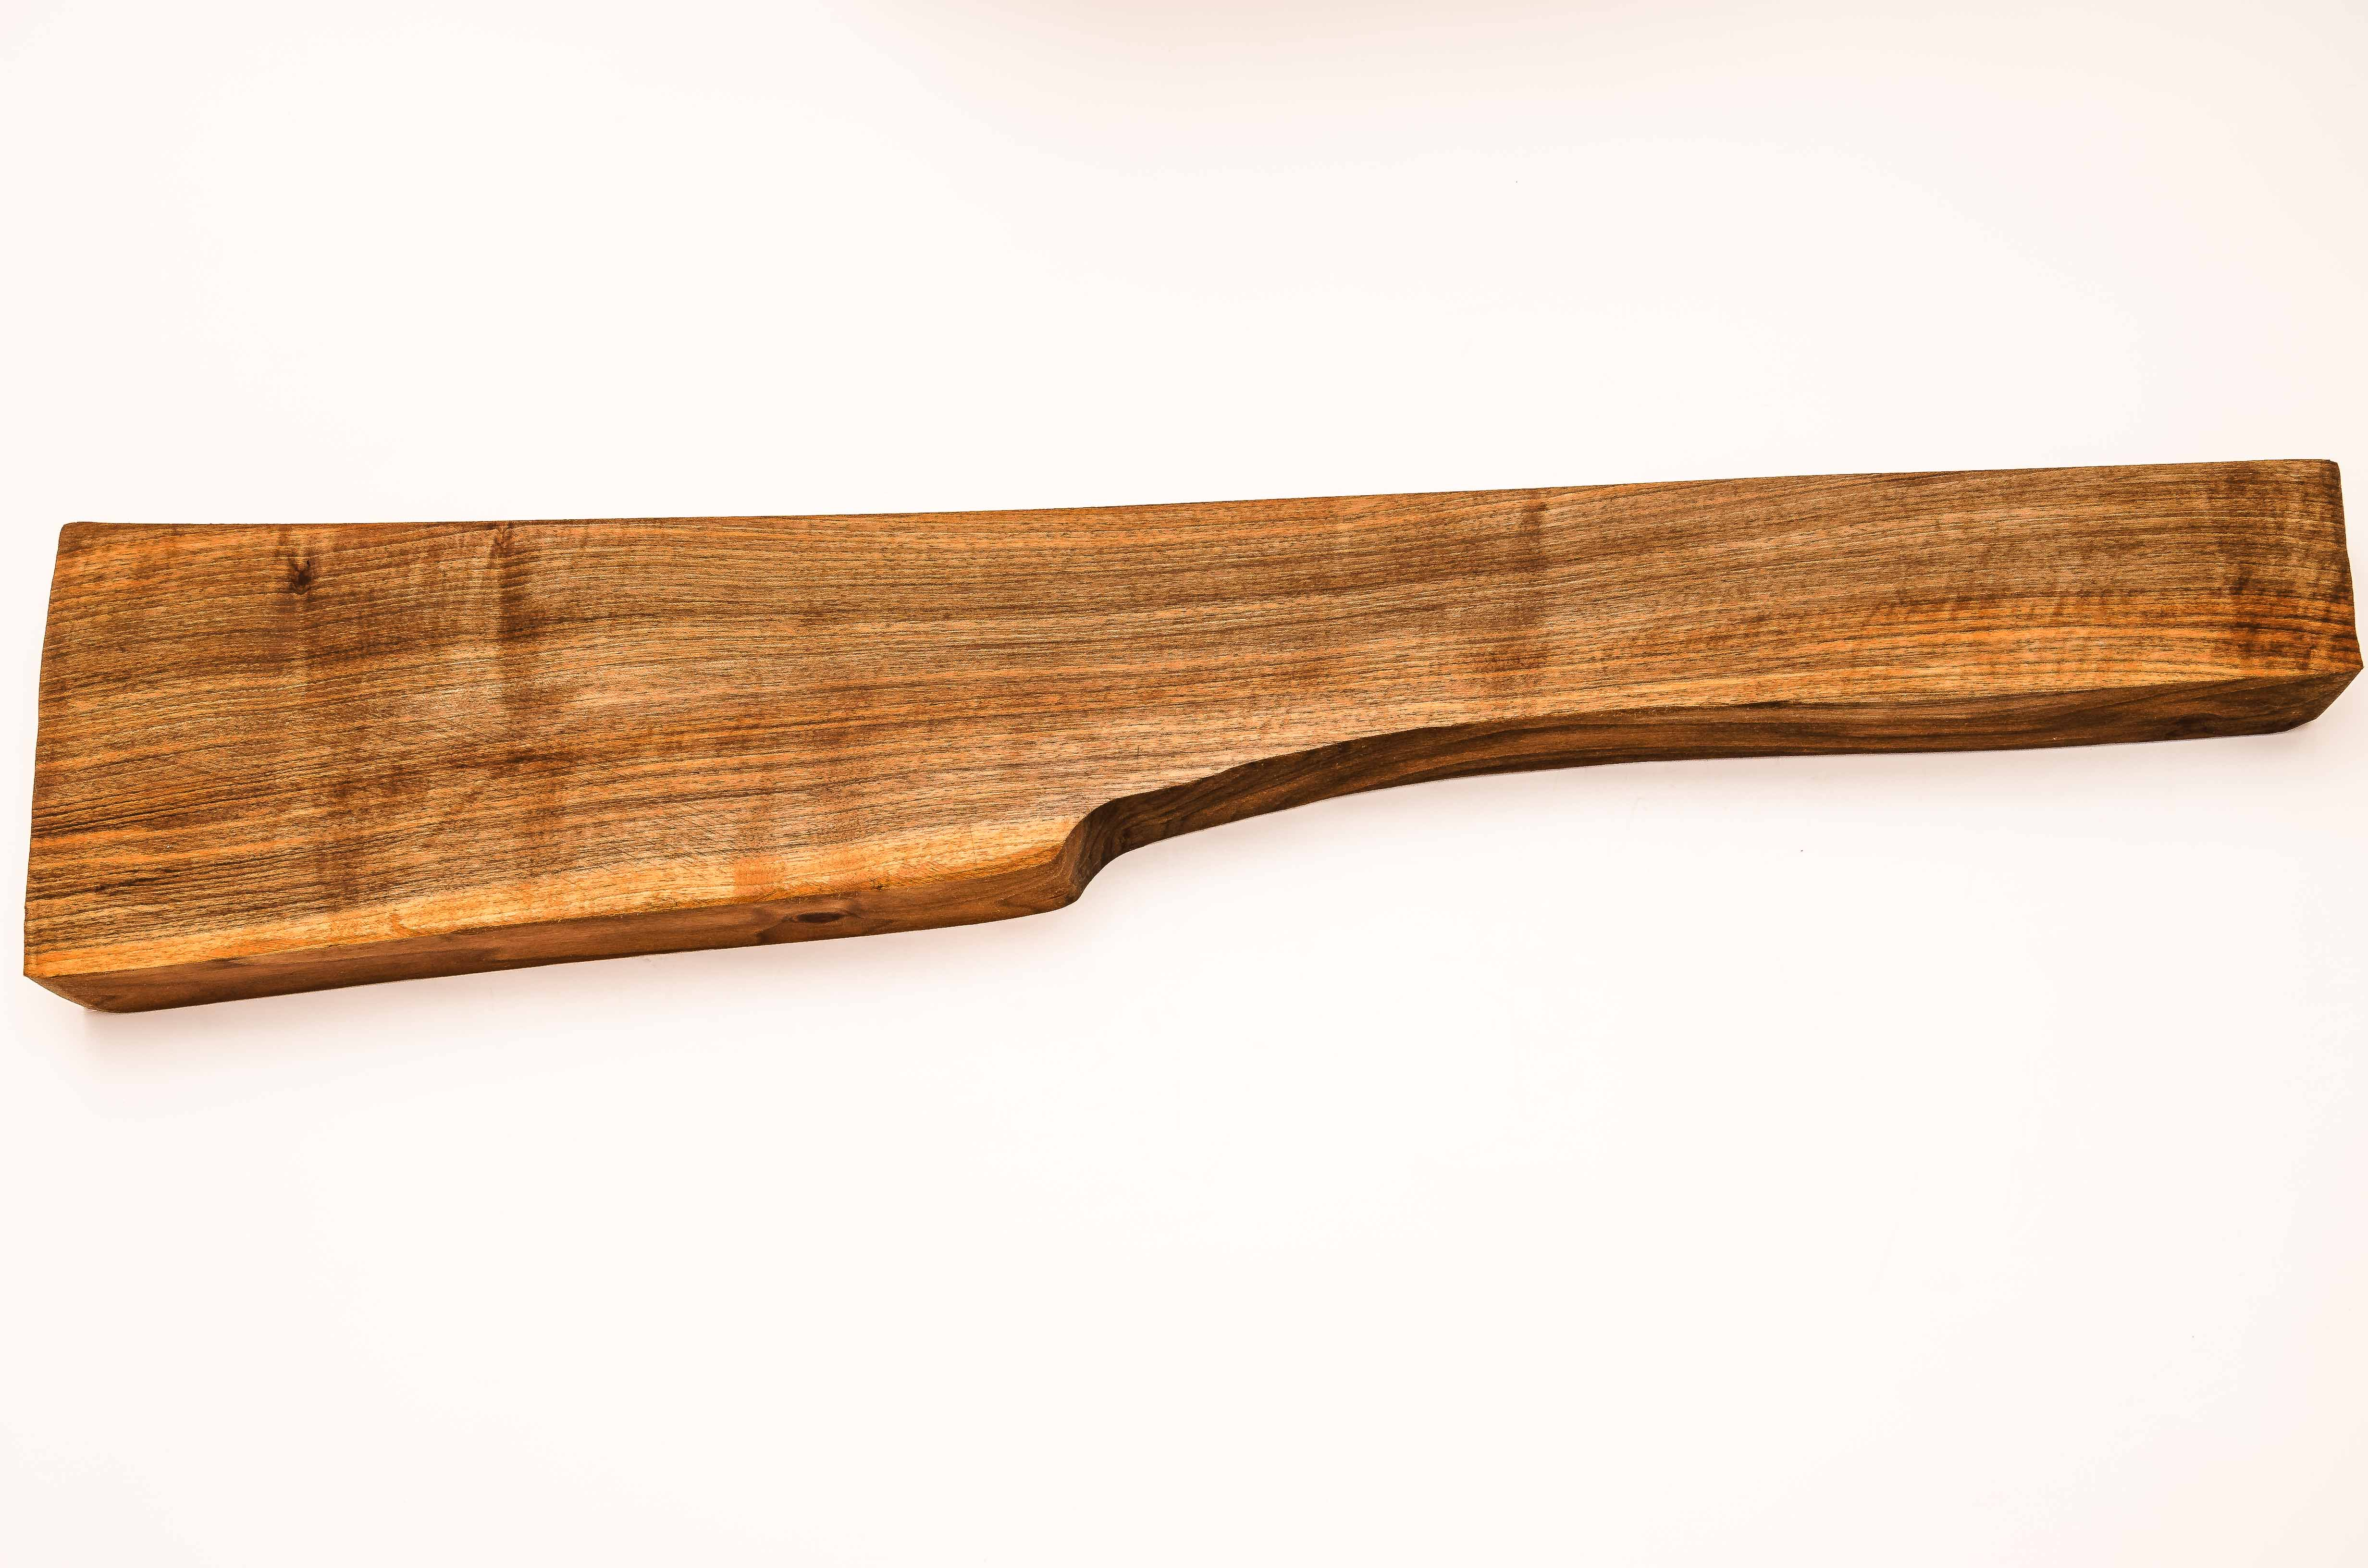 walnut_stock_blanks_for_guns_and_rifles-0658